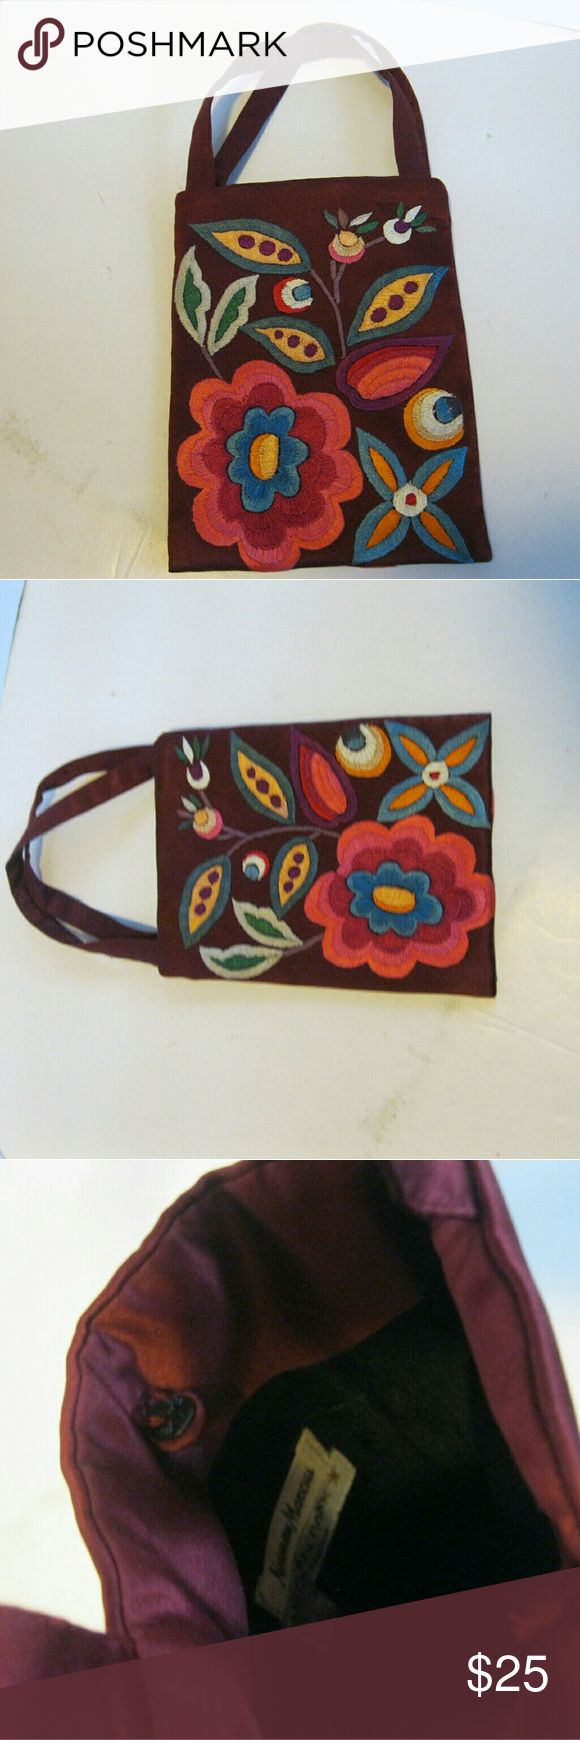 """Megan Park Small Embroidered Handbag Nieman Marcus Megan Park for Nieman Marcus Small Embroidered Handbag. Bag is Maroon silk with embroidered flowers (tag says """"100% silk). Bag measures 5.5"""" x 7.5"""" with a 4.5"""" """"strap drop"""". Bag has a button """"clasp"""" on interior of bag, and a small interior slip pocket. Bag is in good shape - no visible wear.  Bag has the same pattern on both sides. Megan park Bags Mini Bags"""